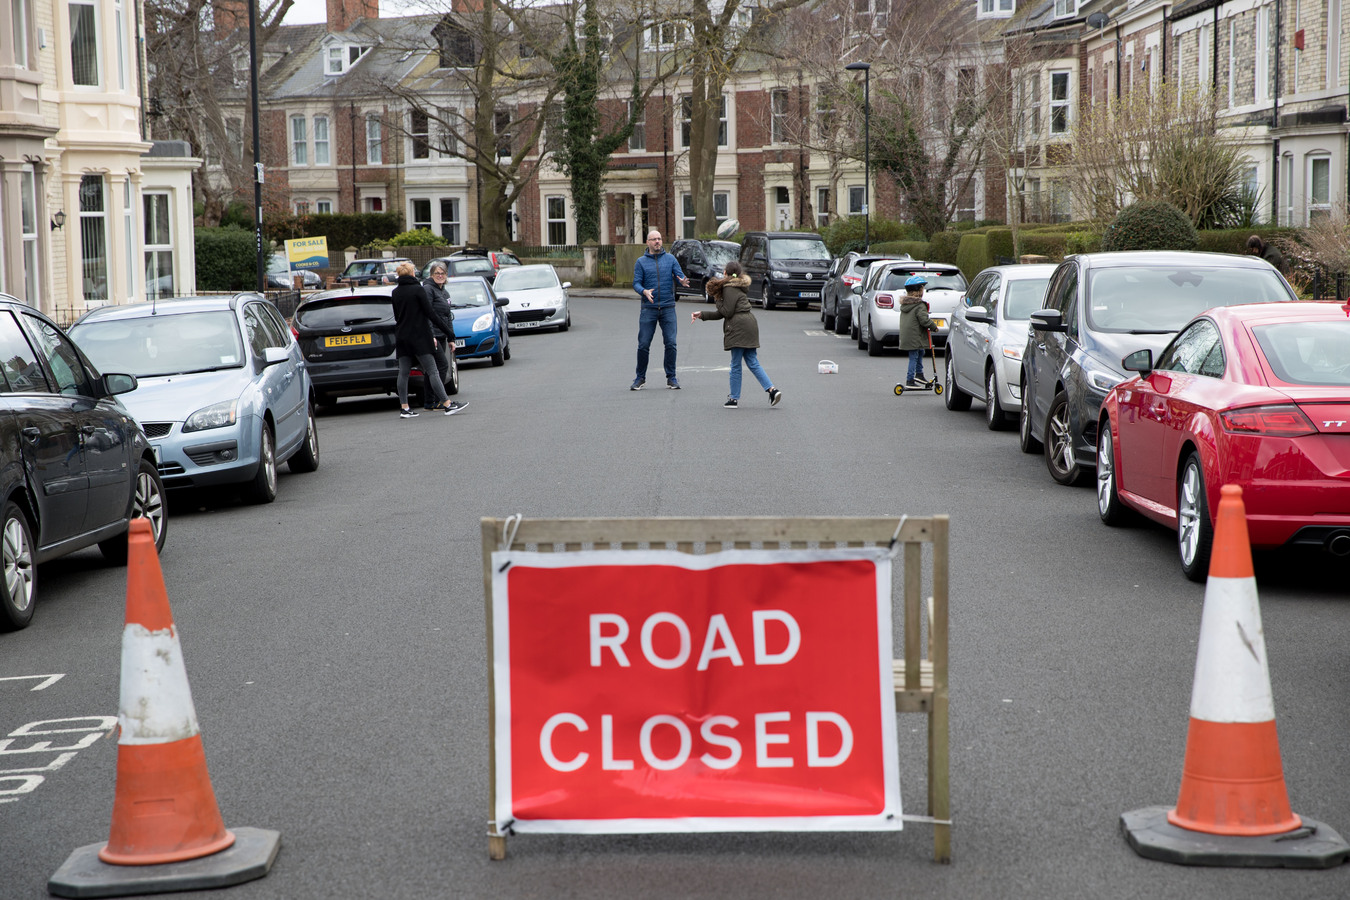 Road closures are part of the activism embedded in the Playing Out movement